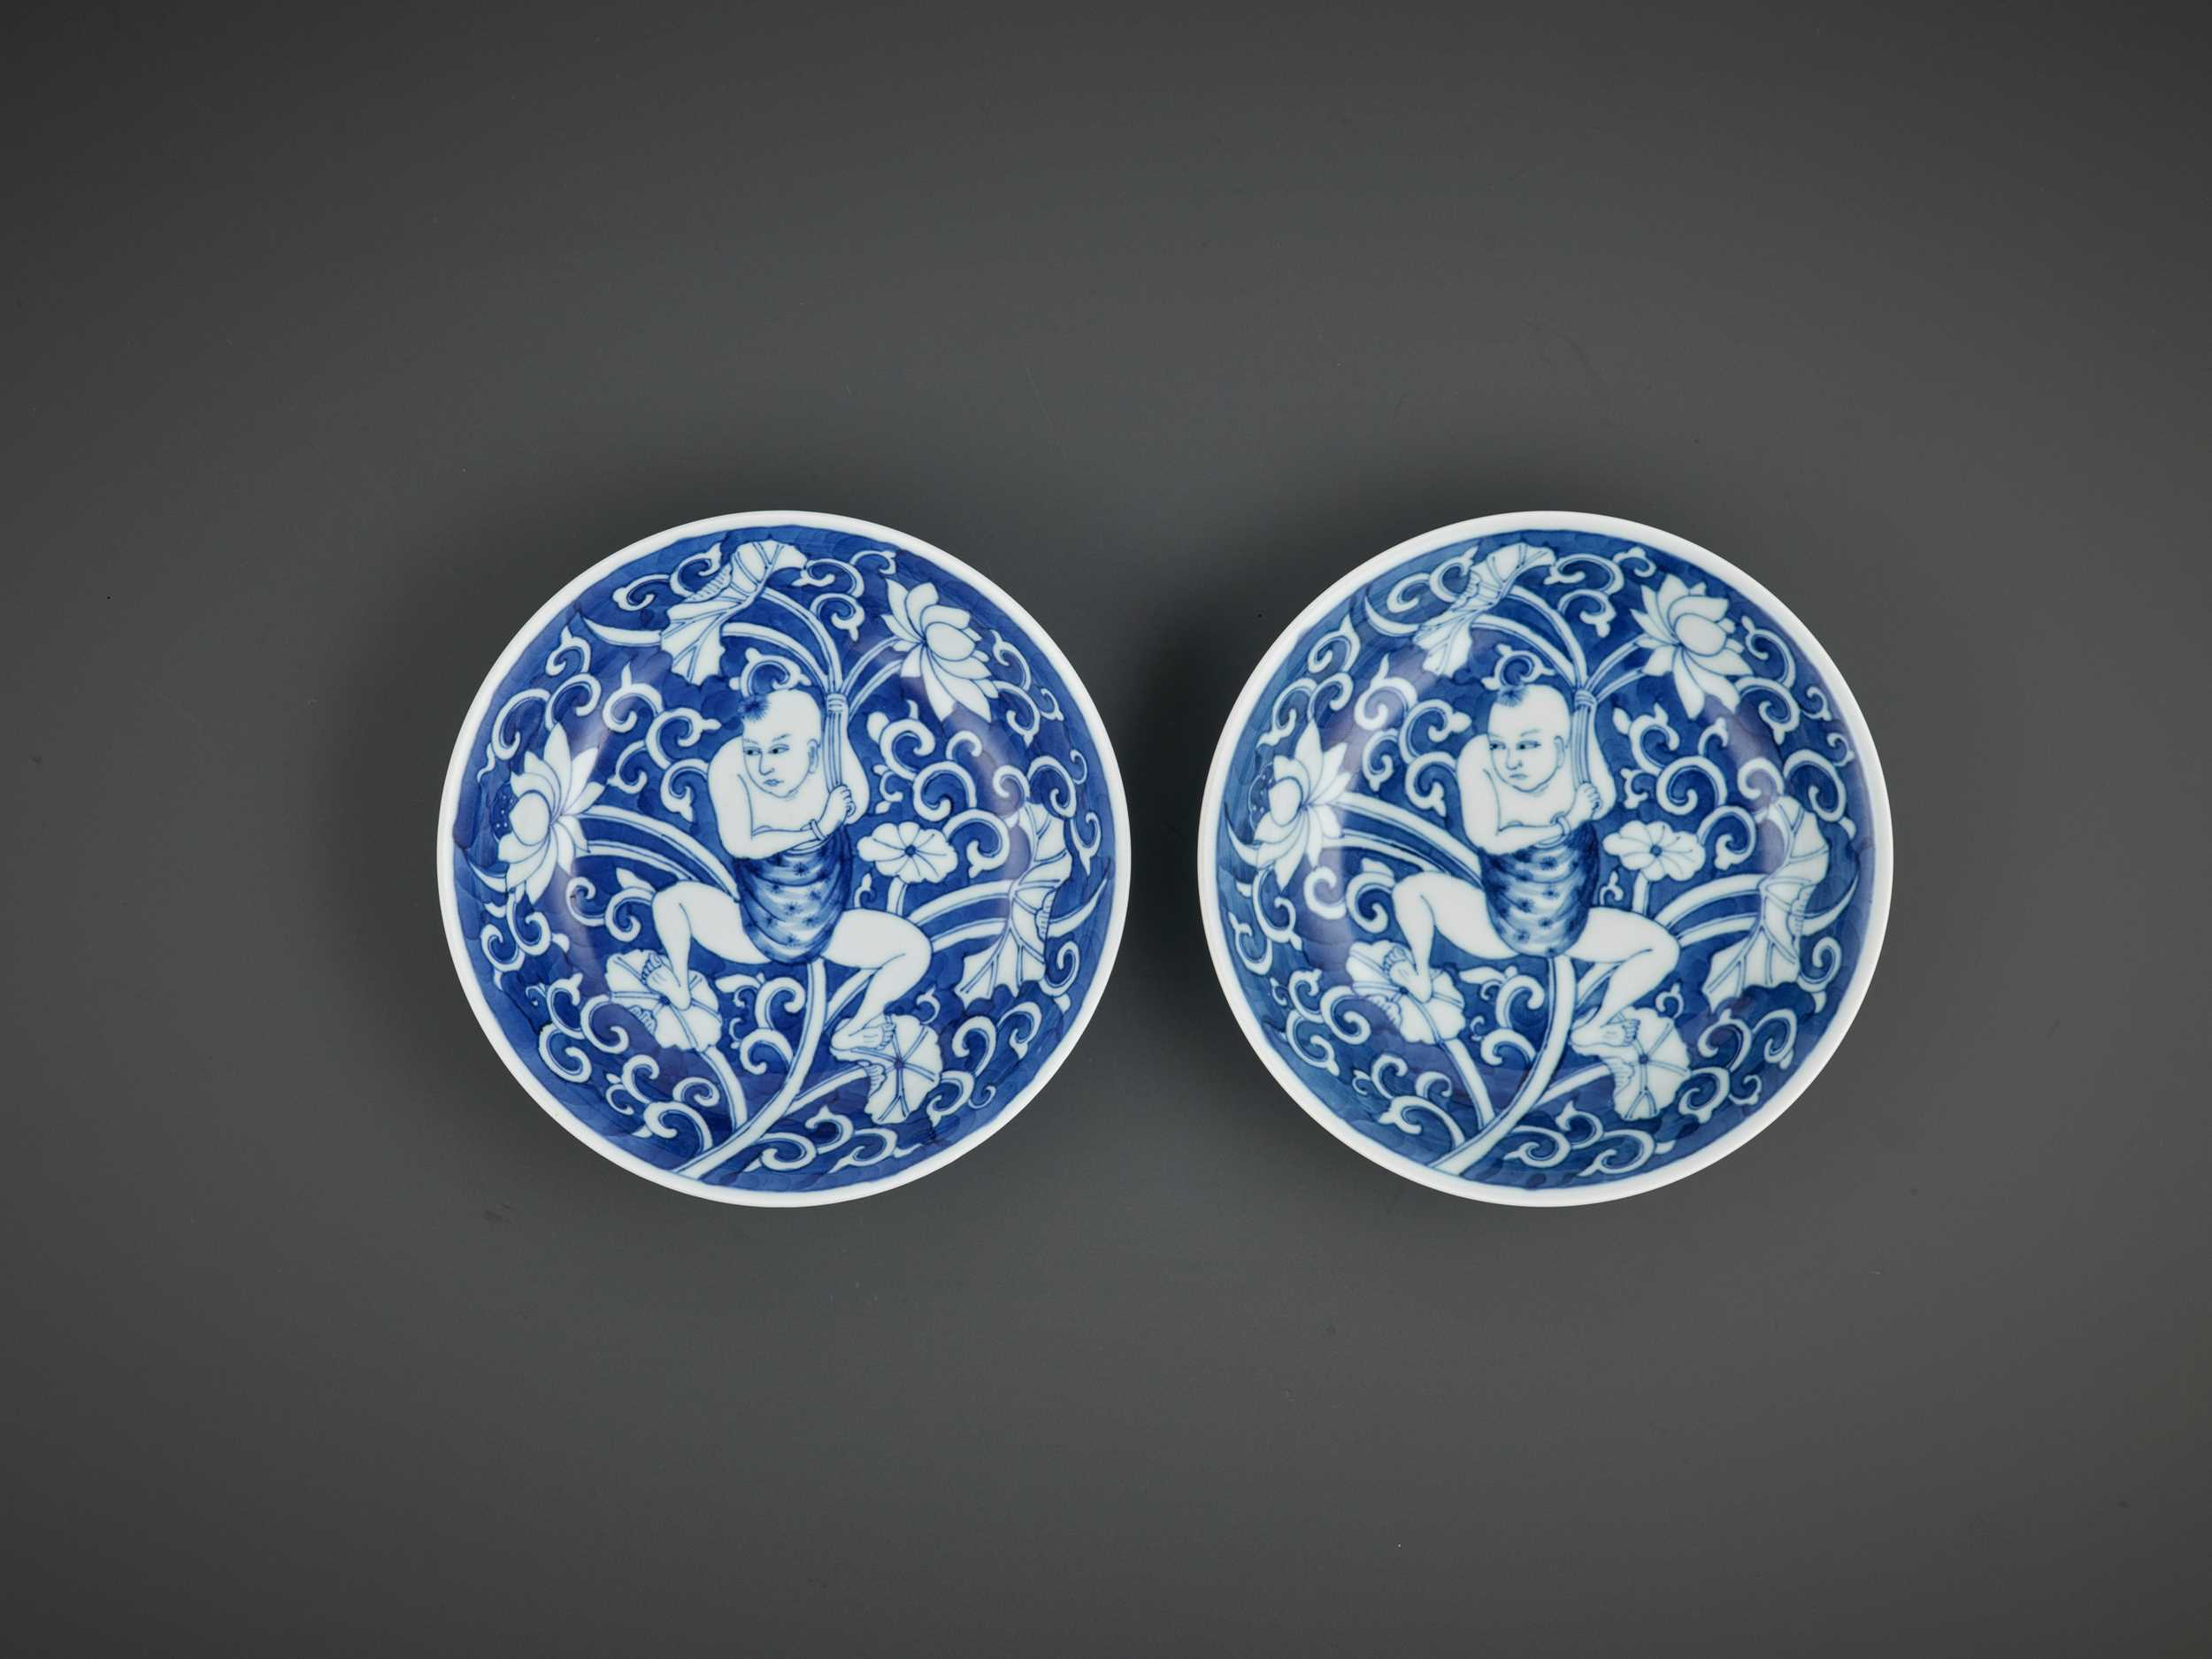 Lot 323 - A NEAR-PAIR OF BLUE AND WHITE 'LOTUS BOY' DISHES, KANGXI PERIOD